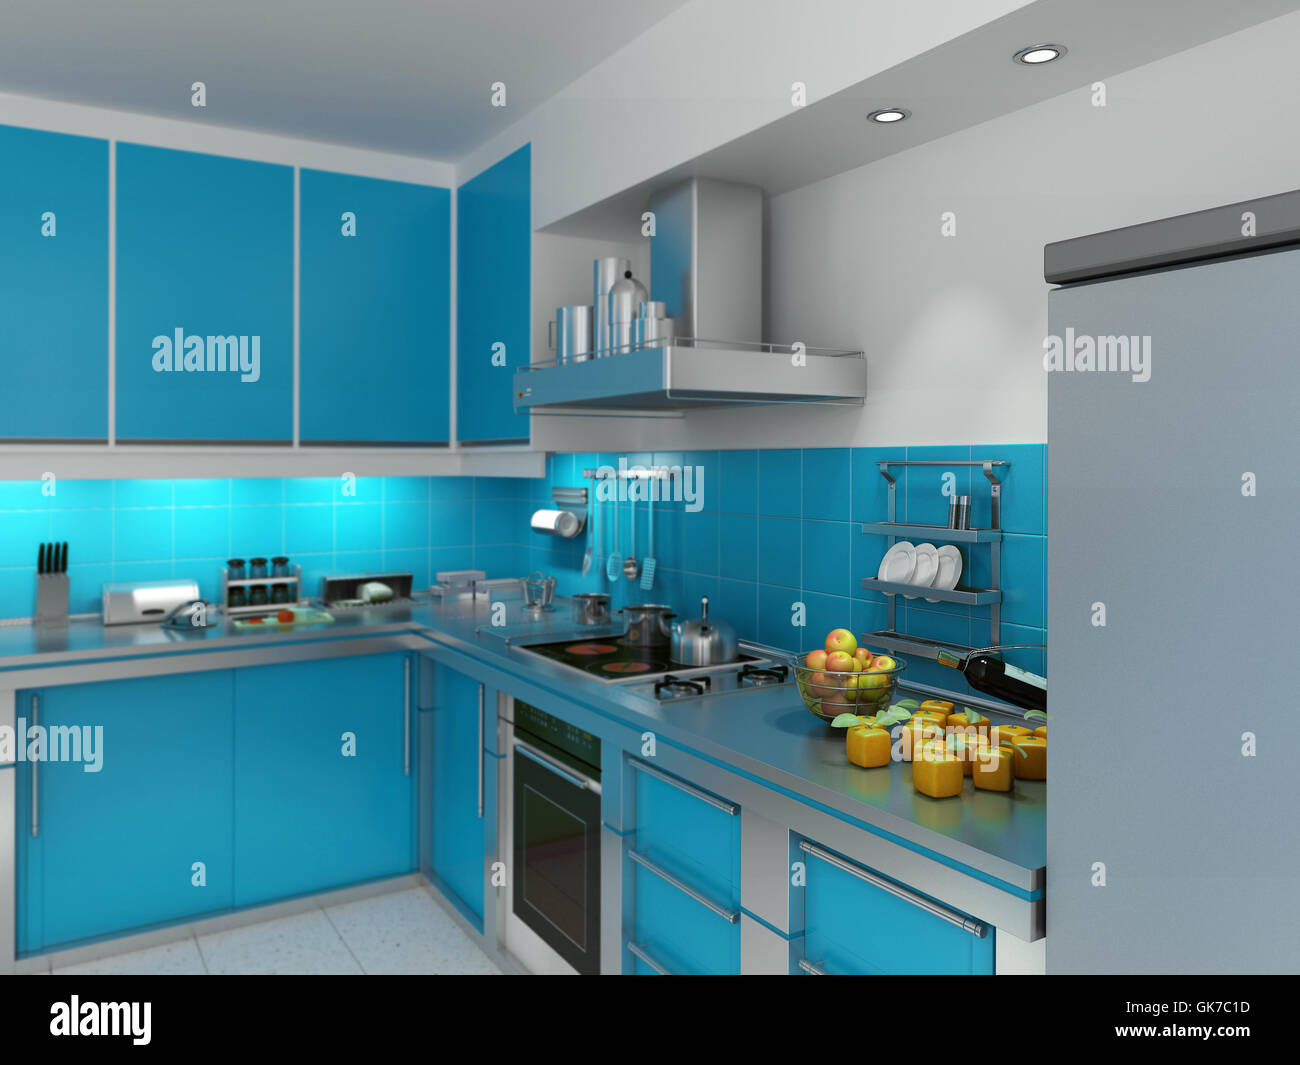 Stainless Rack Kitchen Cabinet Stock Photos & Stainless Rack Kitchen ...